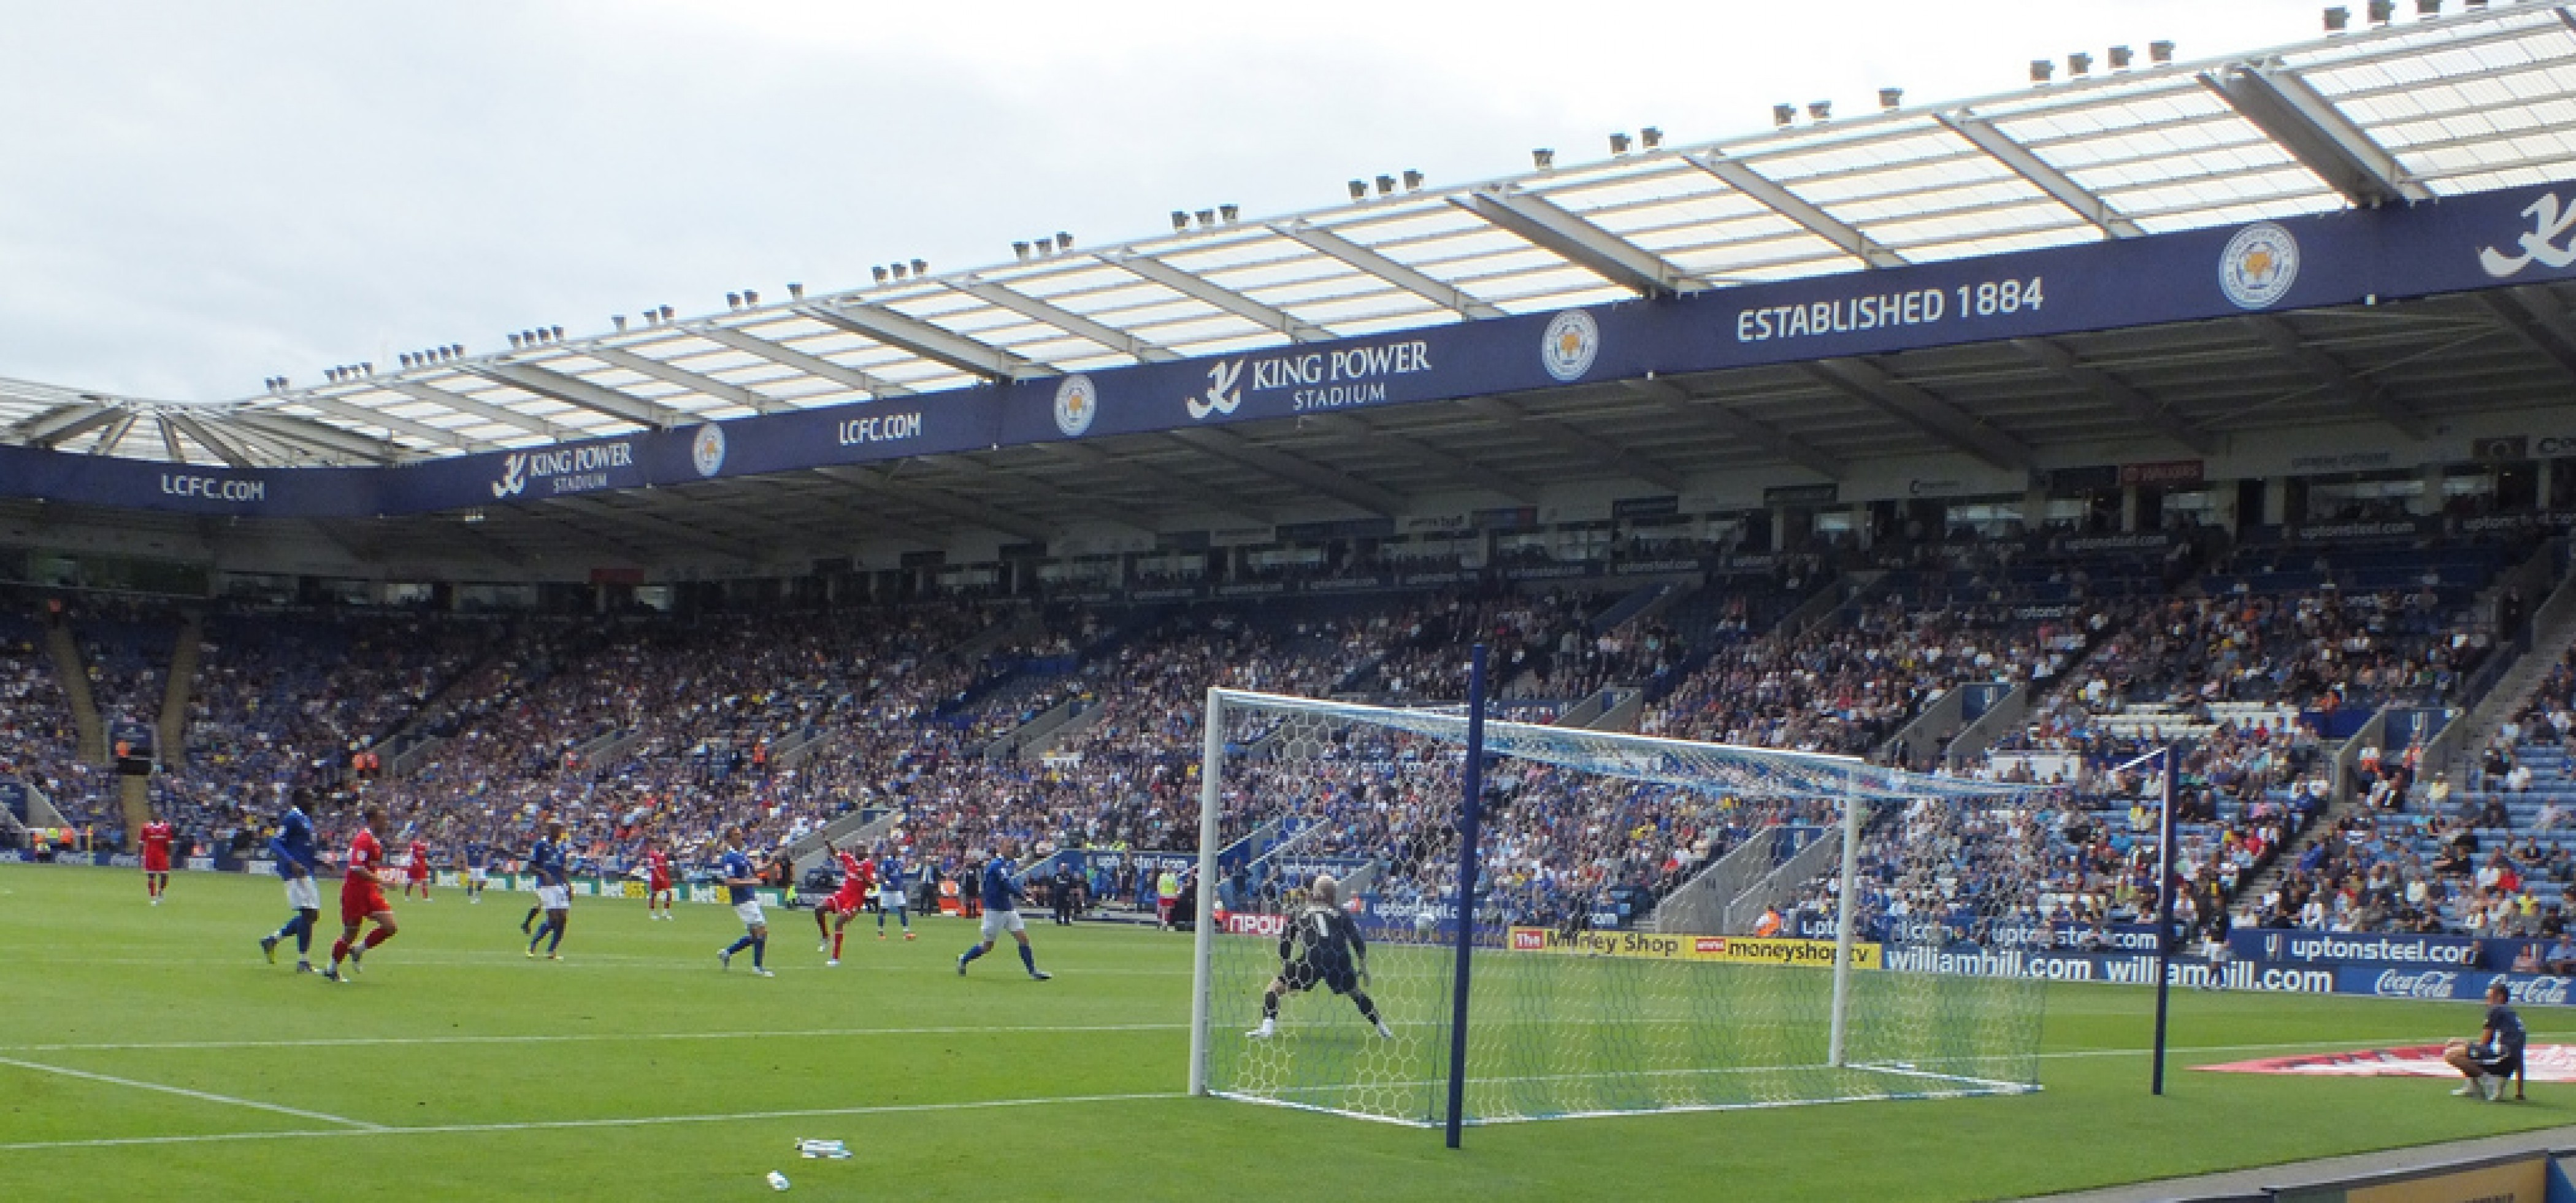 Memorable Match: Huddersfield Town 0-2 Leicester City - Knockaert double fires Foxes up the table.